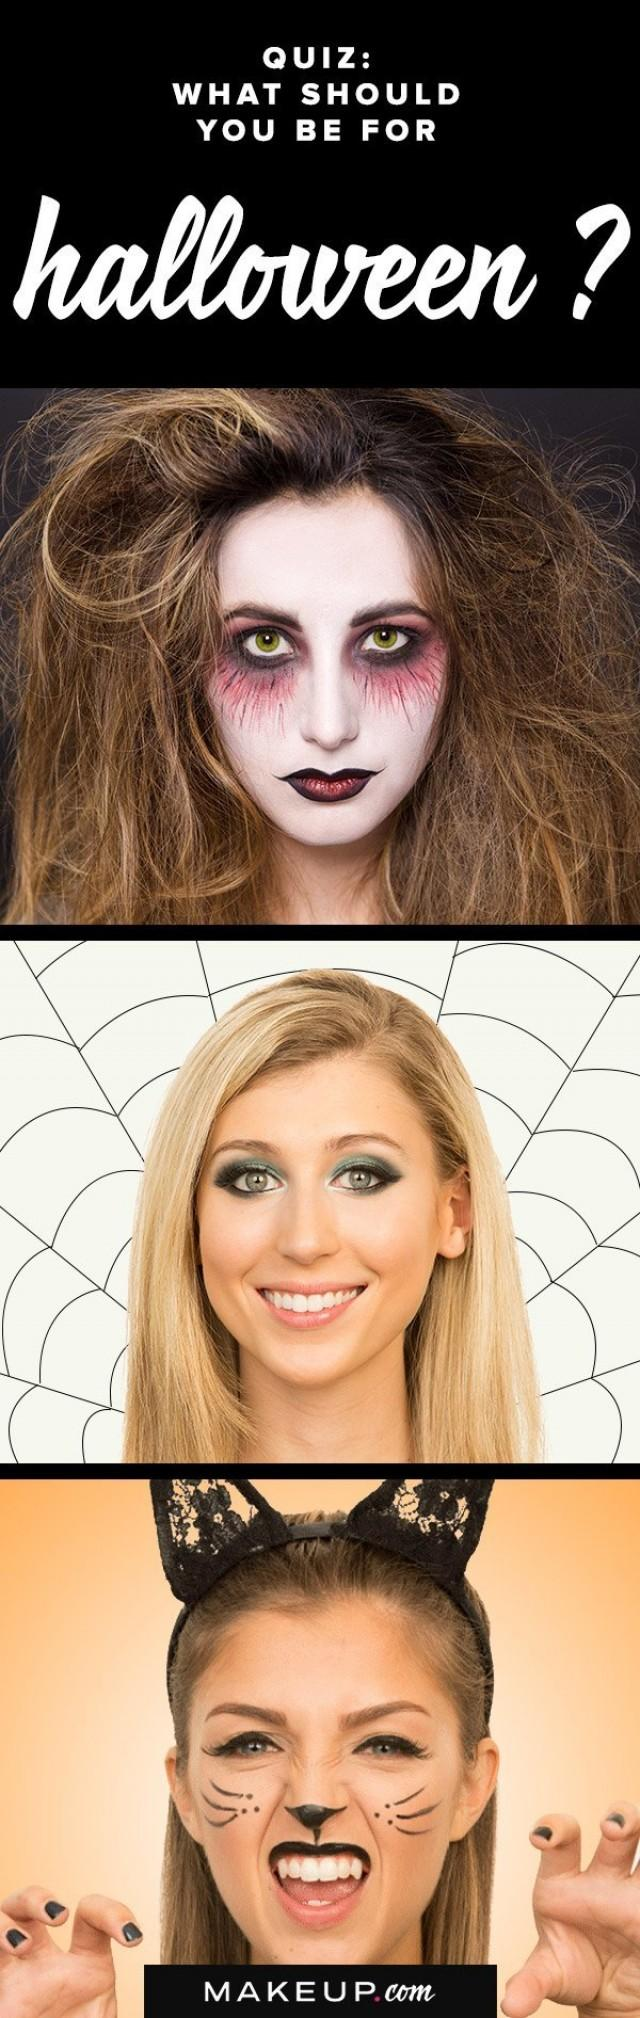 Quiz: What Should You Be For Halloween? - Weddbook